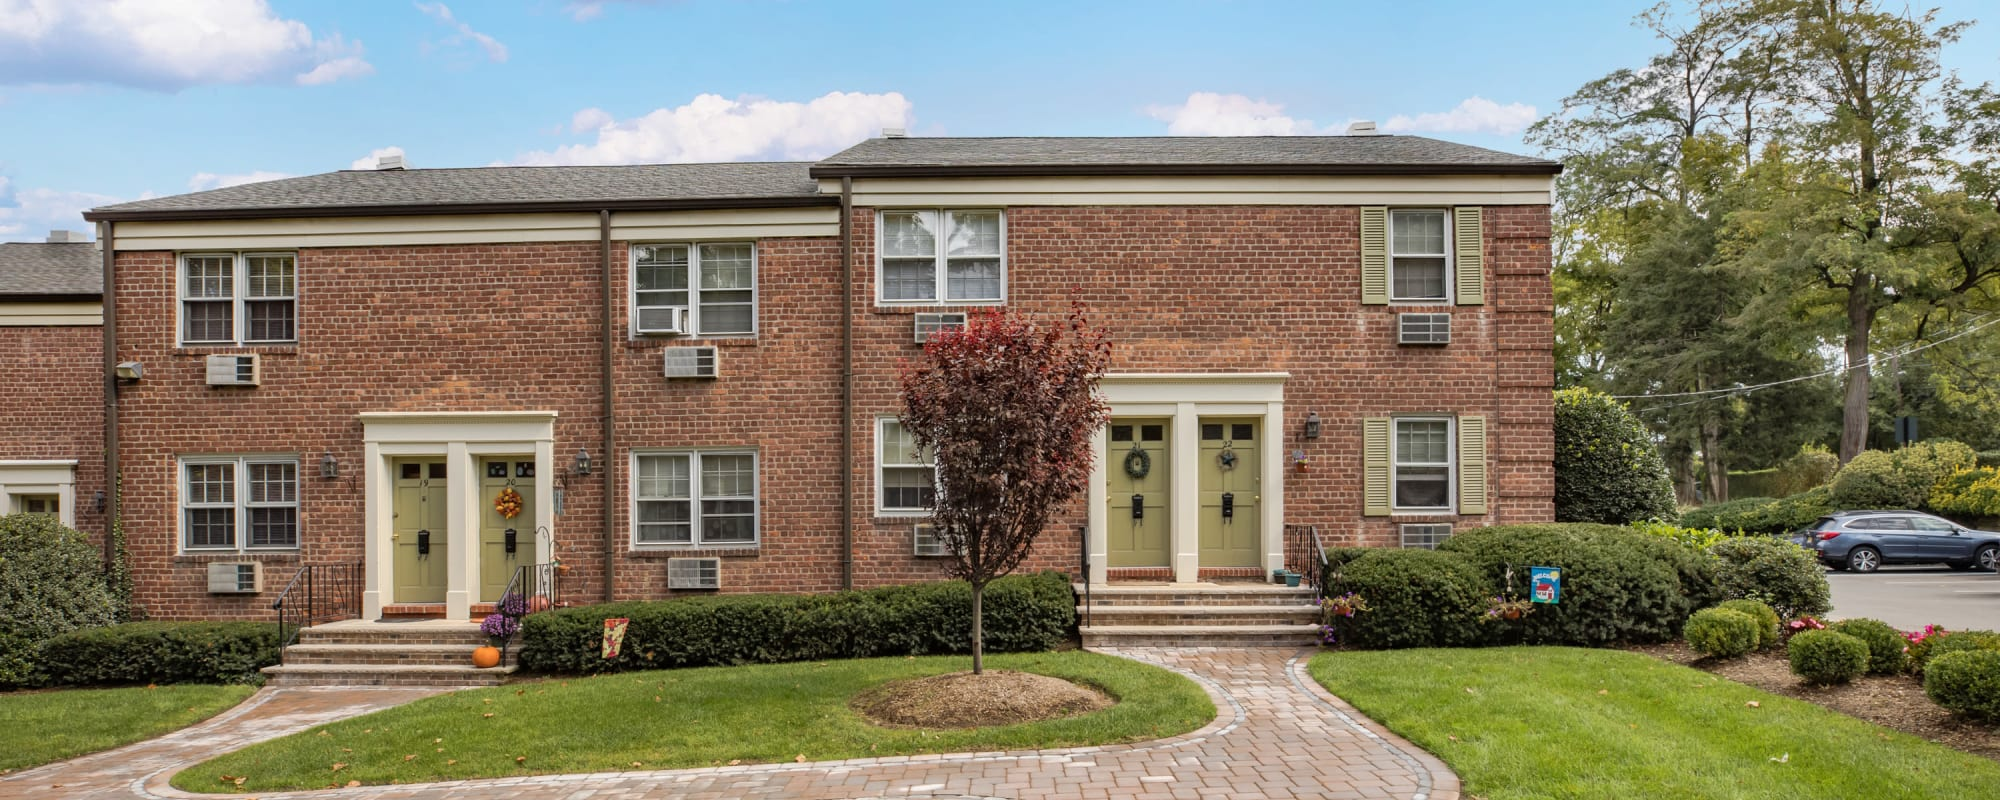 Reviews of General Wayne Townhomes and Ridgedale Gardens in Madison, New Jersey